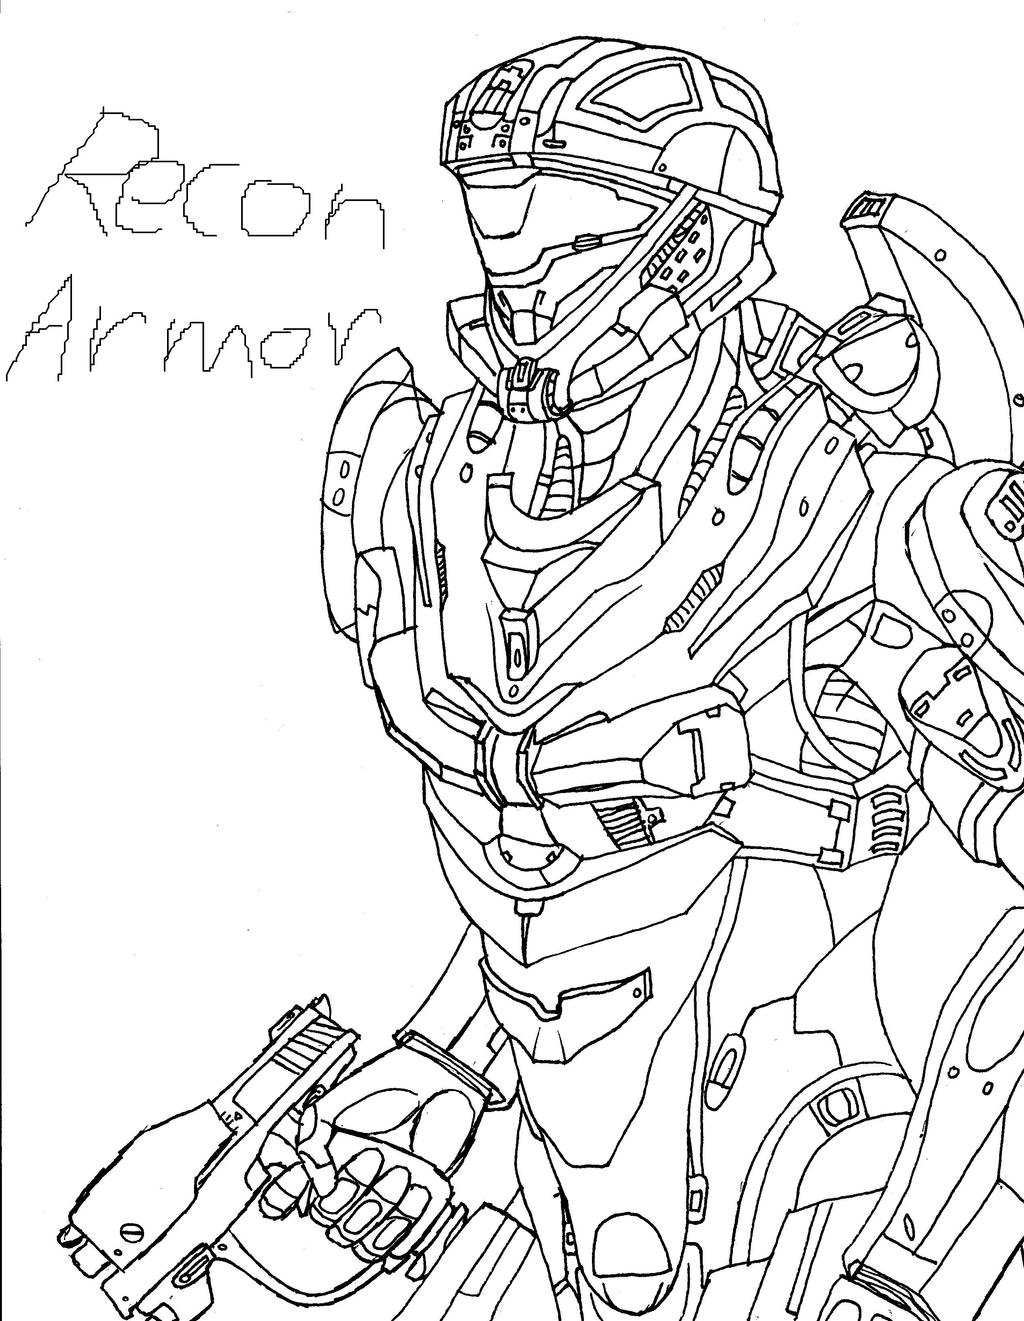 Halo 4 Spartan Drawing - voitures-americaines info